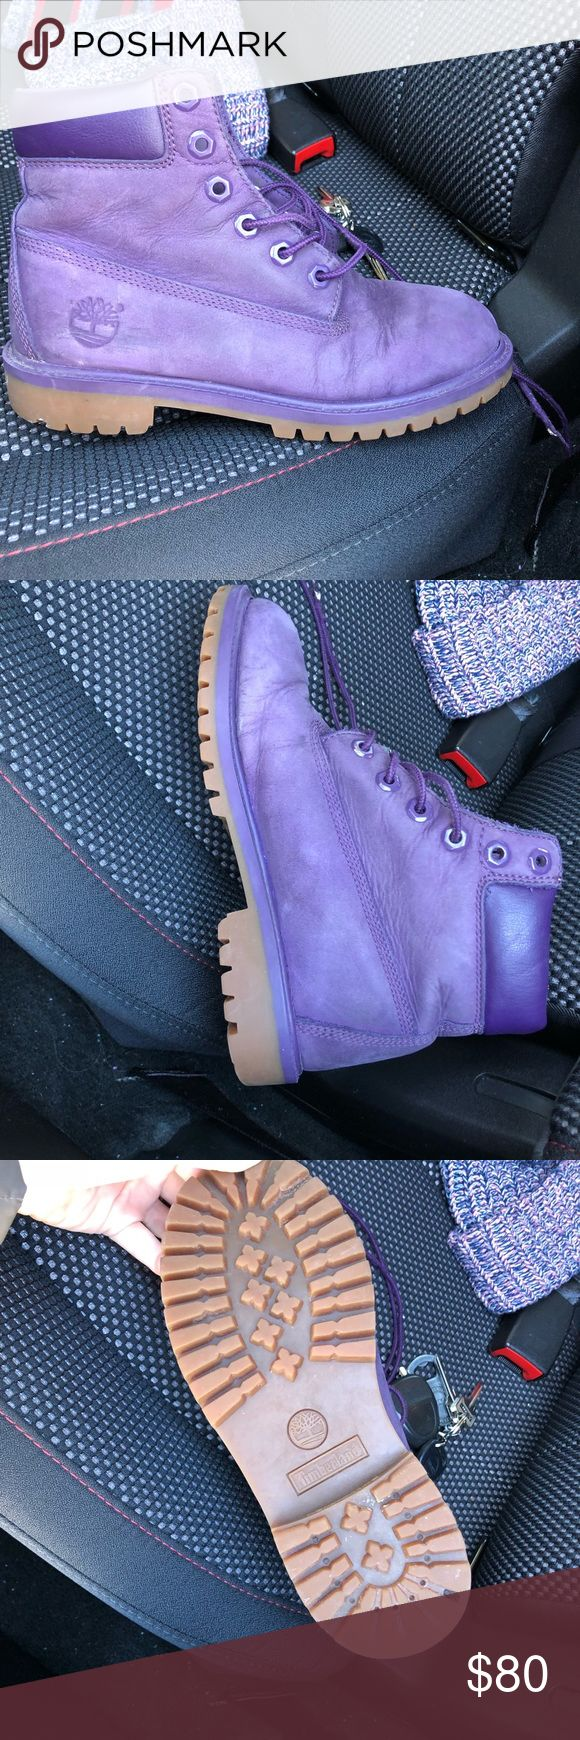 Timberland Boots girls size 4 Purple timberland boots, girls size 4 but can fit adult 5.5-6.5 only worn a couple of times and look brand new Timberland Shoes Winter & Rain Boots